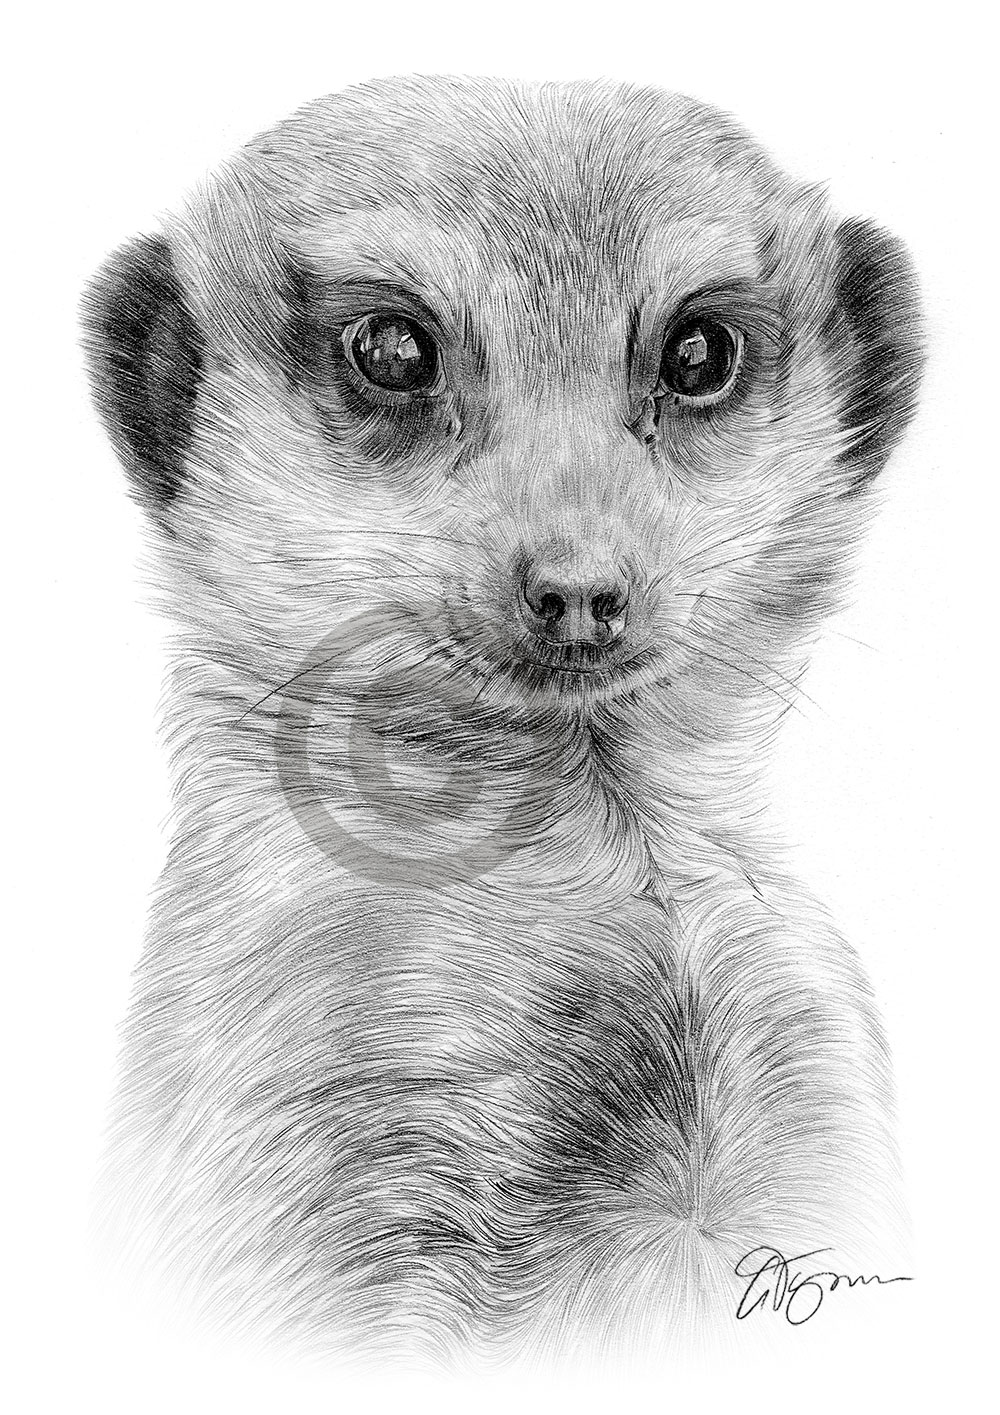 Pencil drawing of an African meerkat by artist Gary Tymon